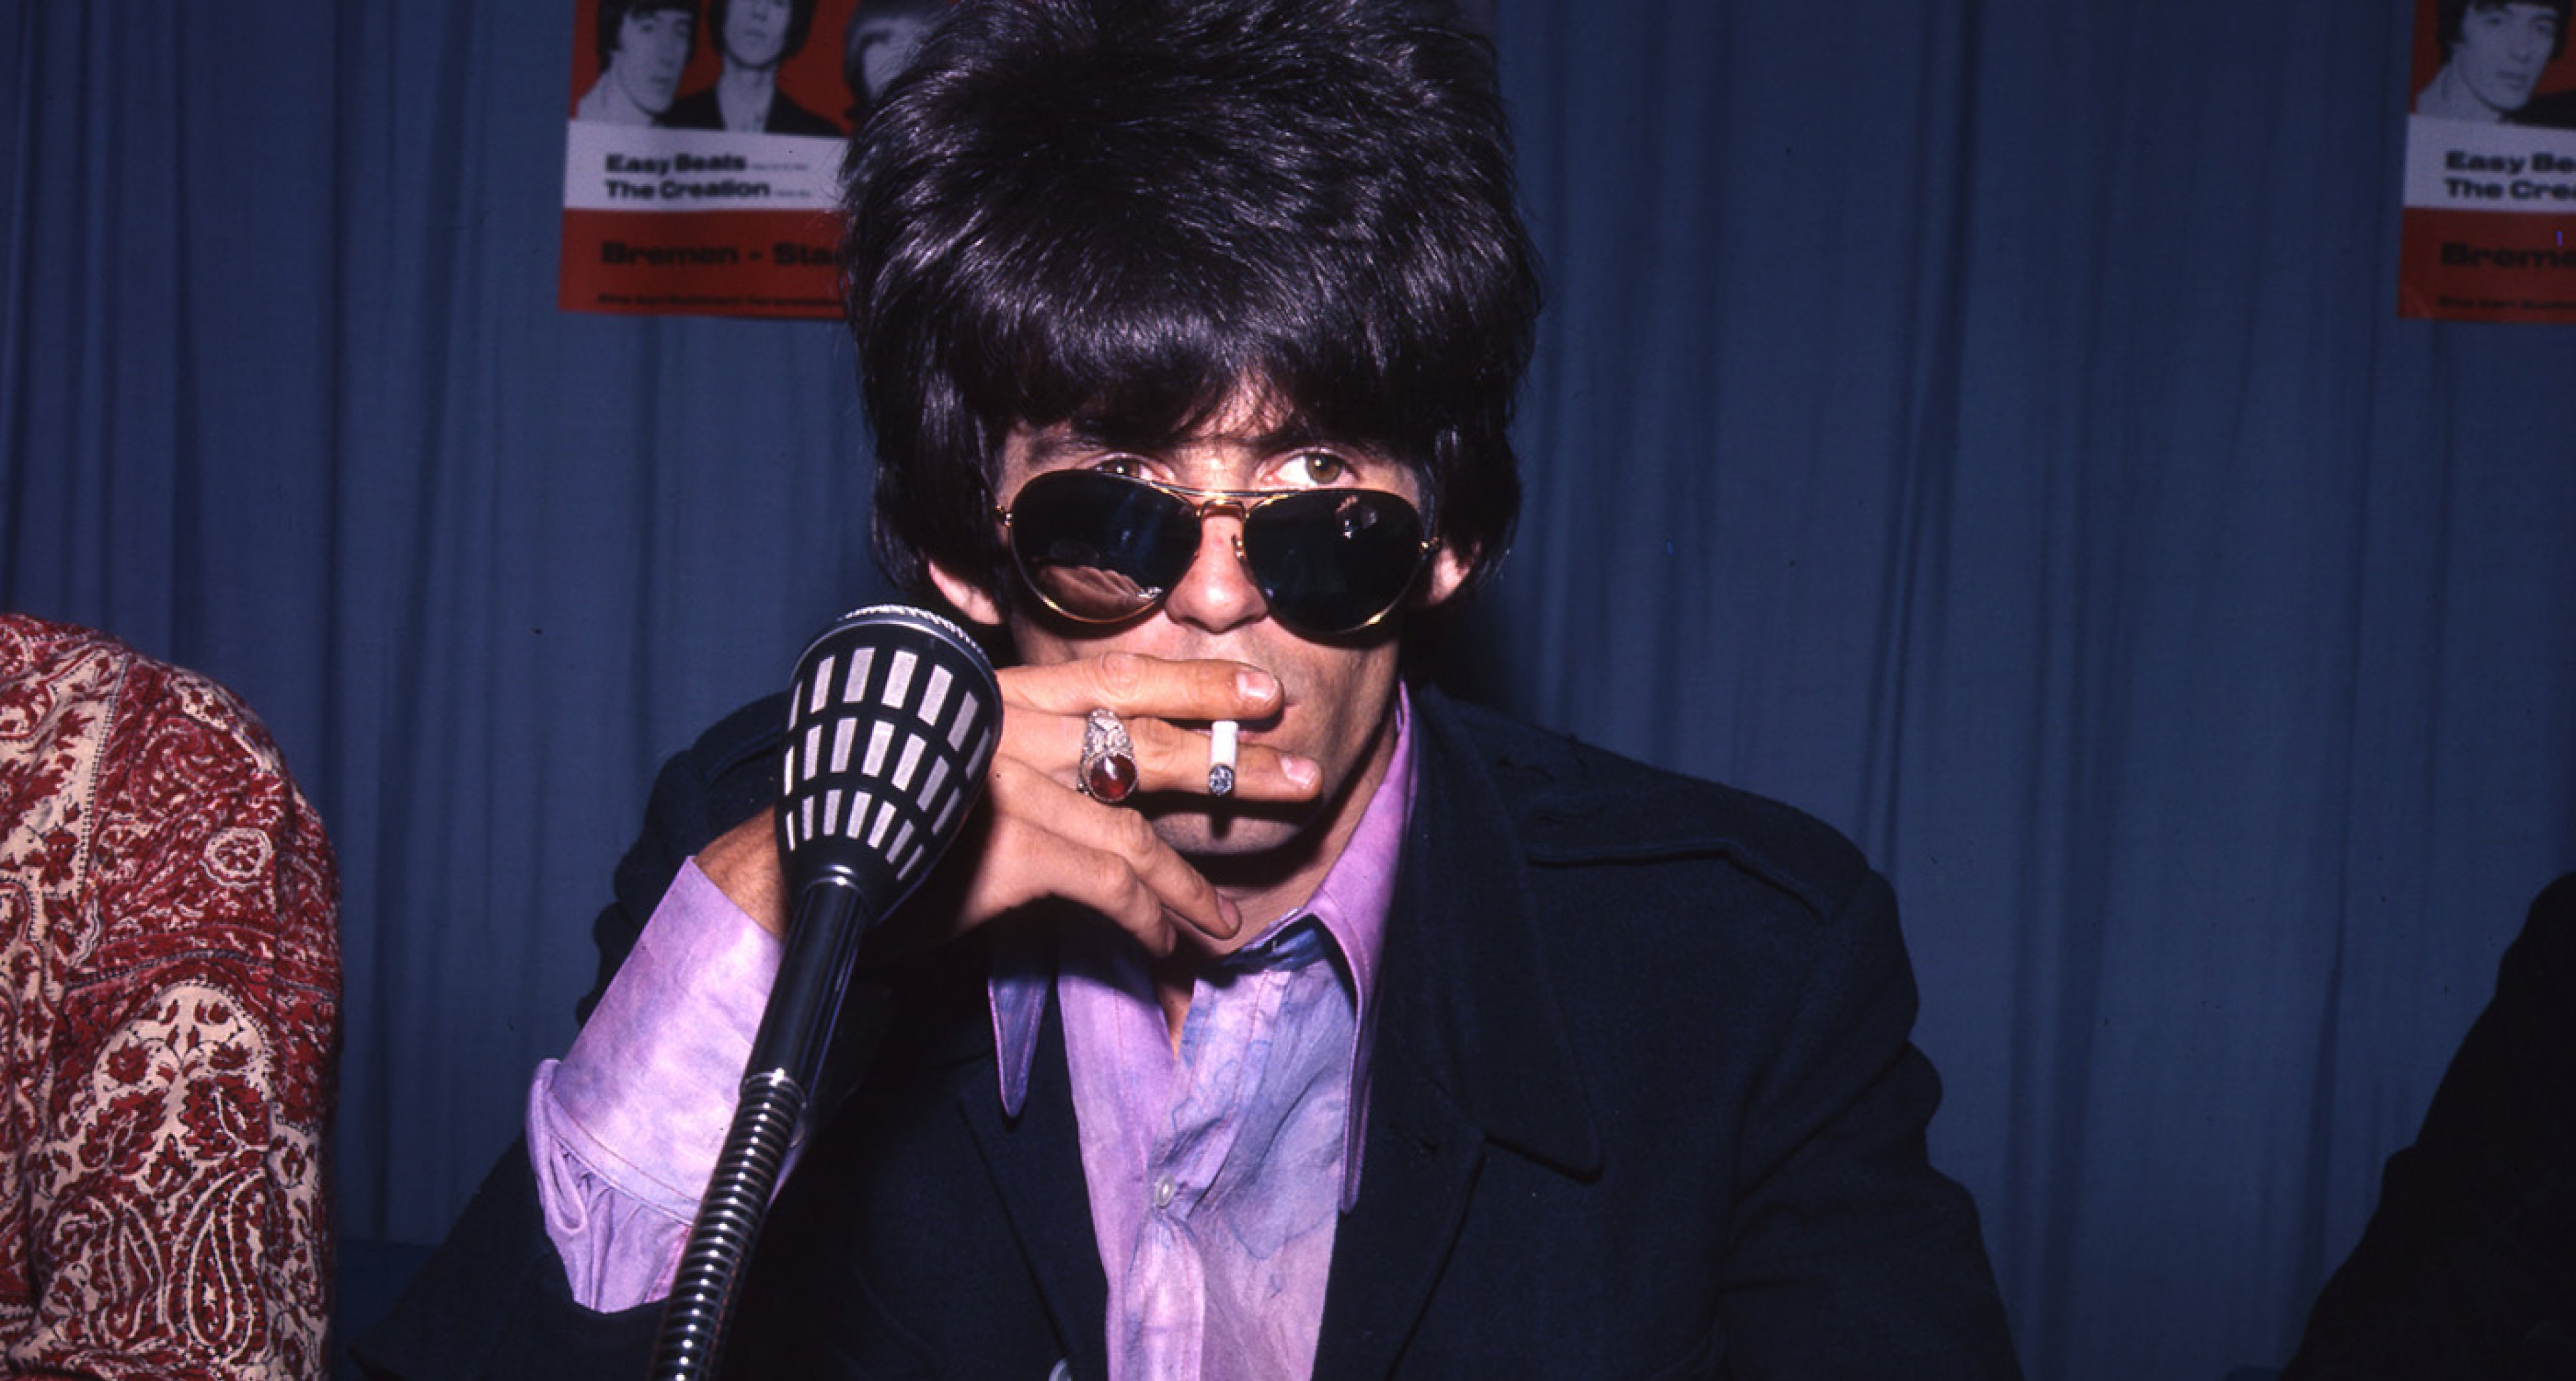 Keith Richards of the Rolling Stones at a press conference in Bremen, Germany in 1967.